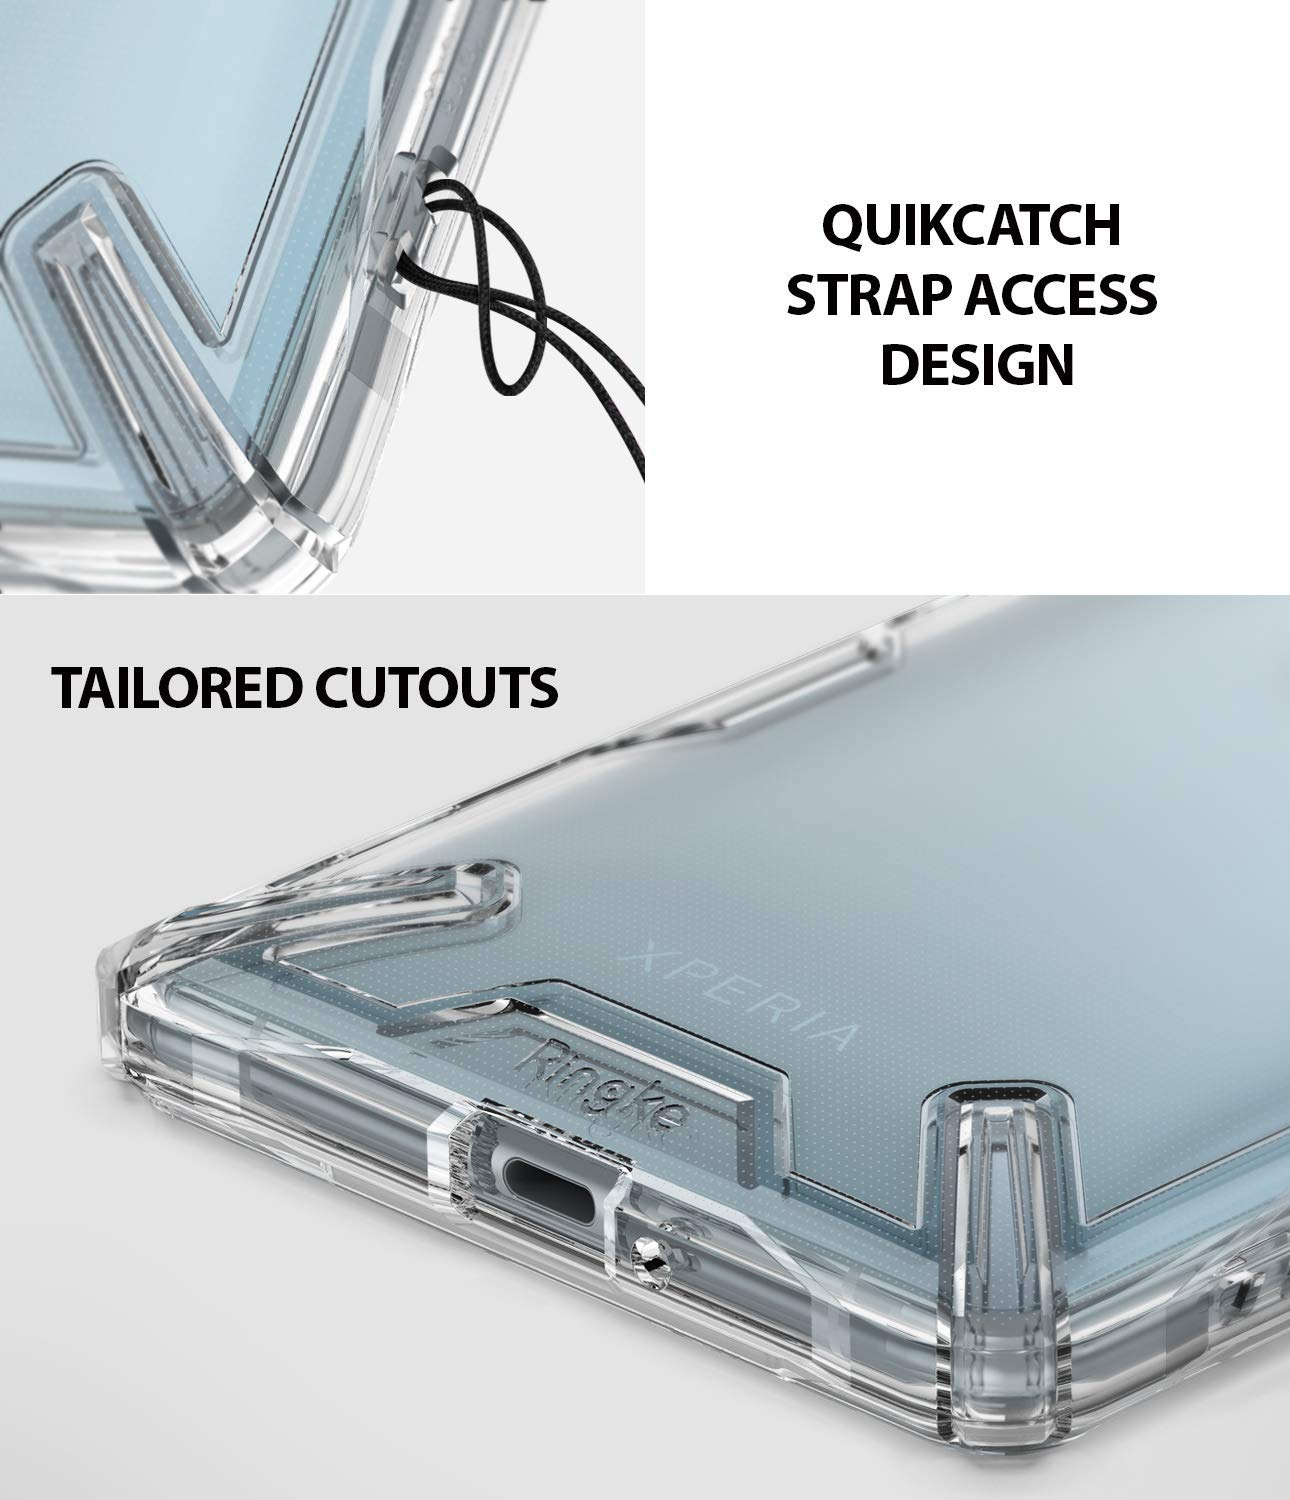 quikcatch strap access hole design with tailored cutouts